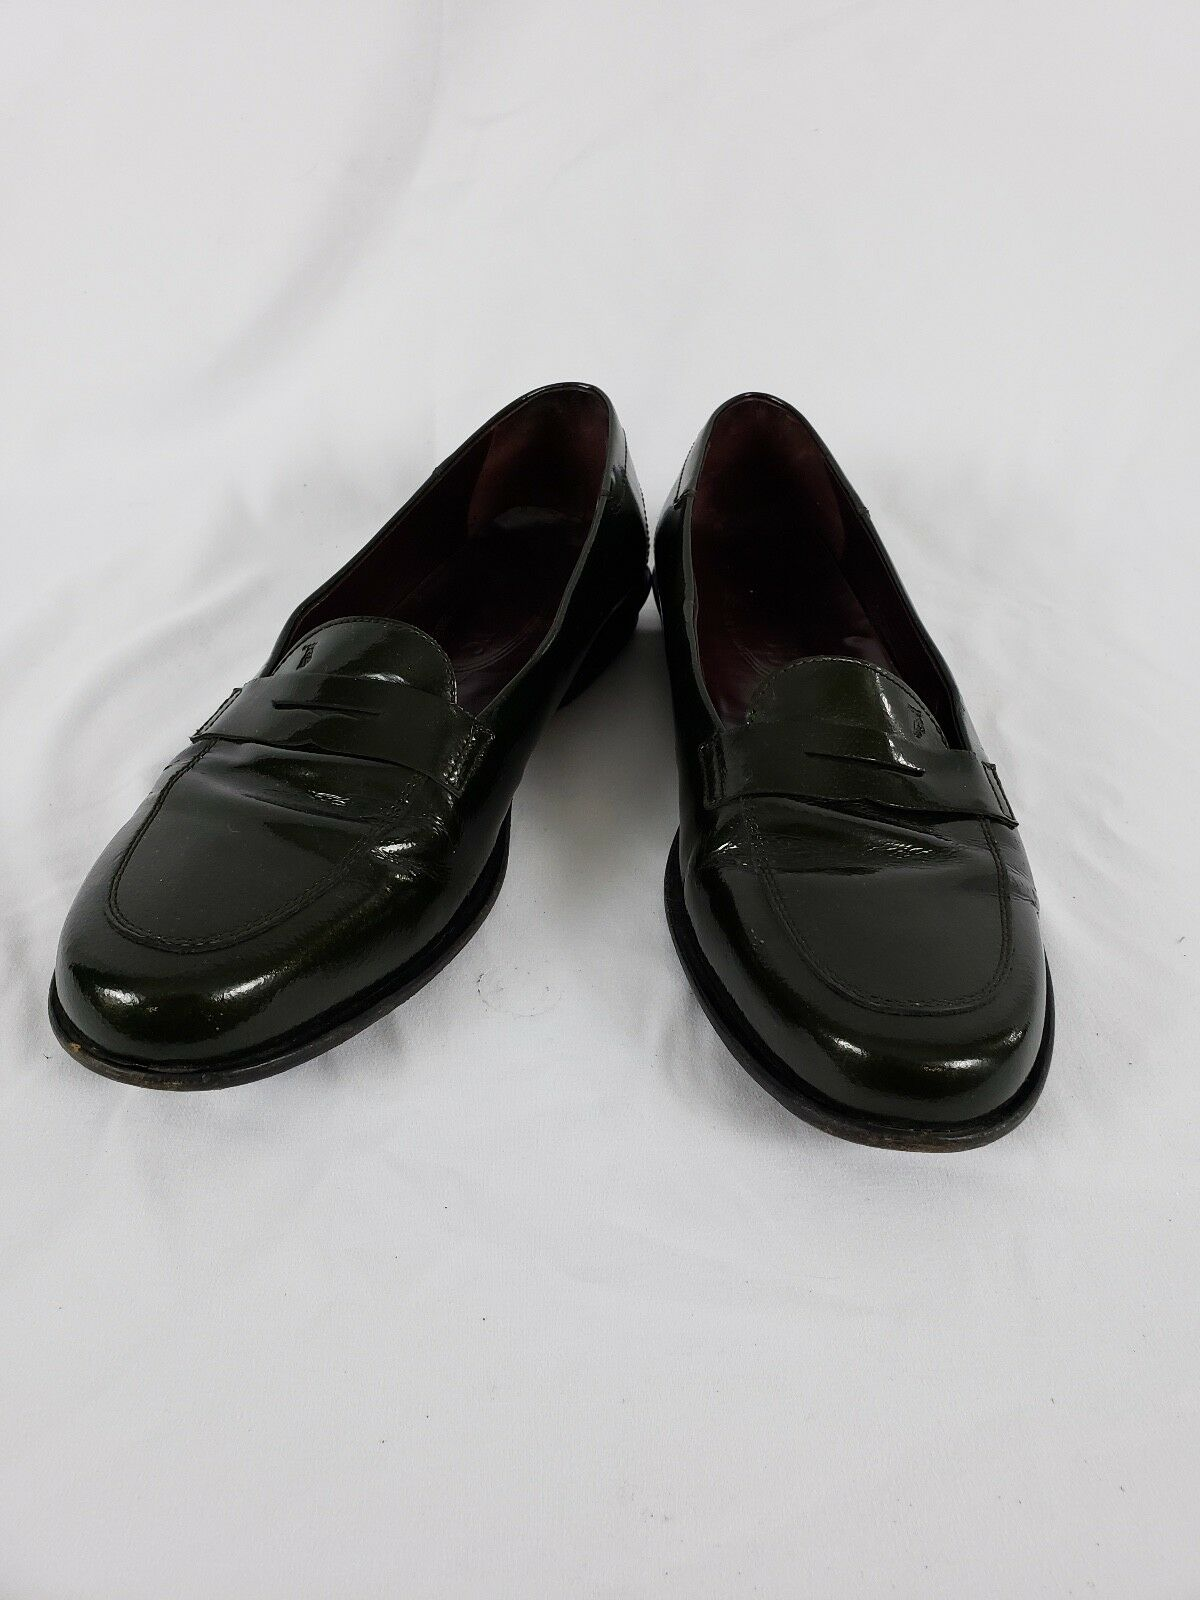 Tod's driving penny loafers green patent leather mens or womens